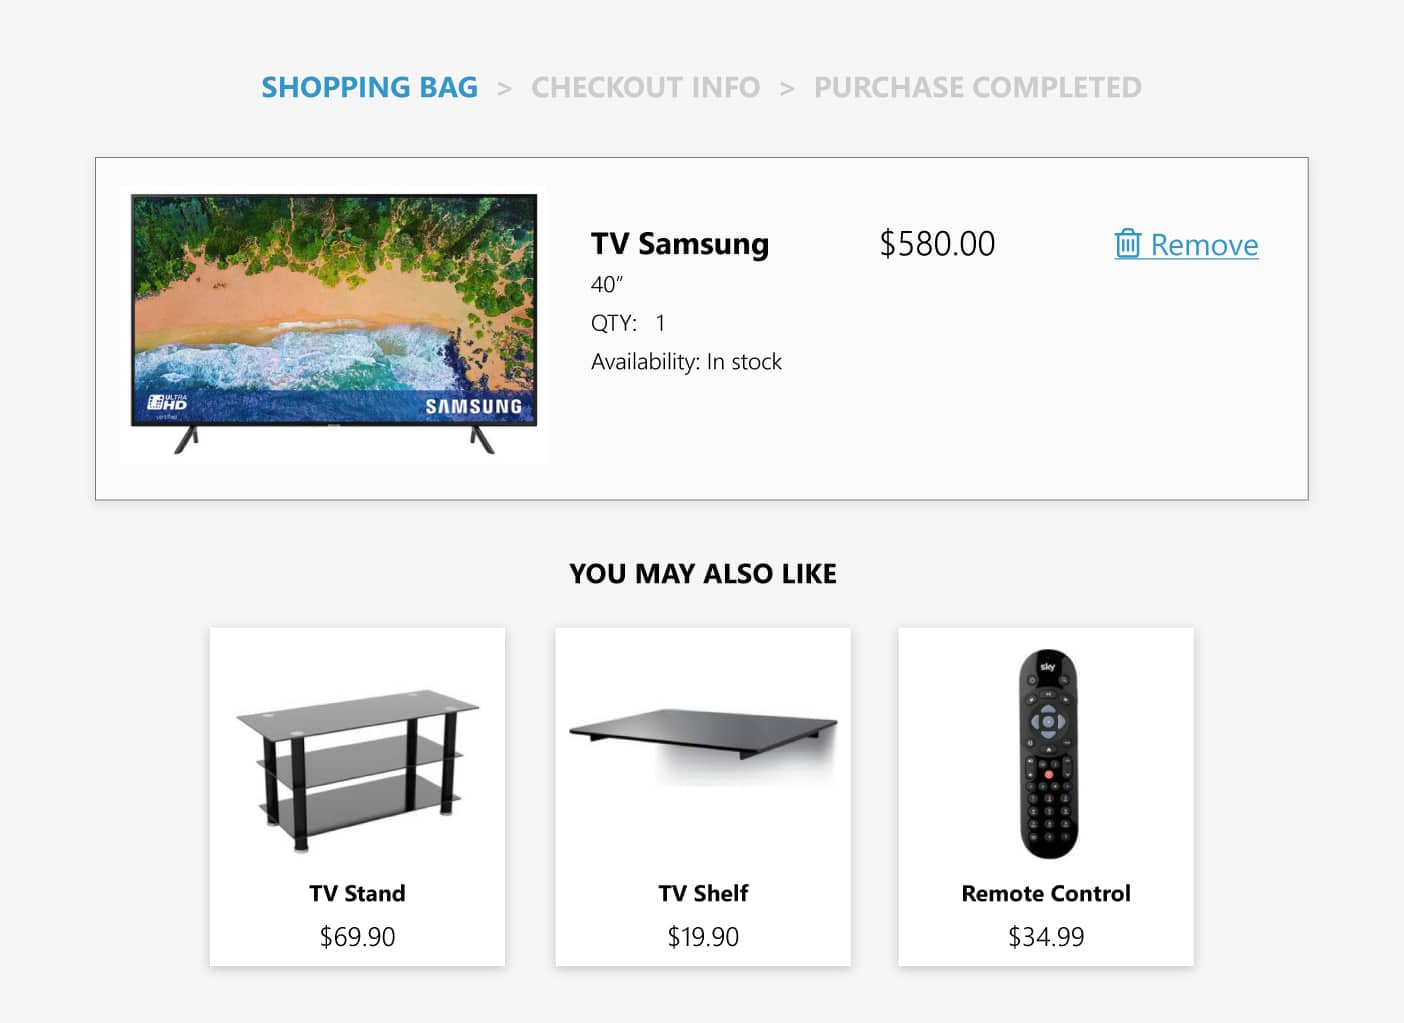 product recommendations based on the purchase history